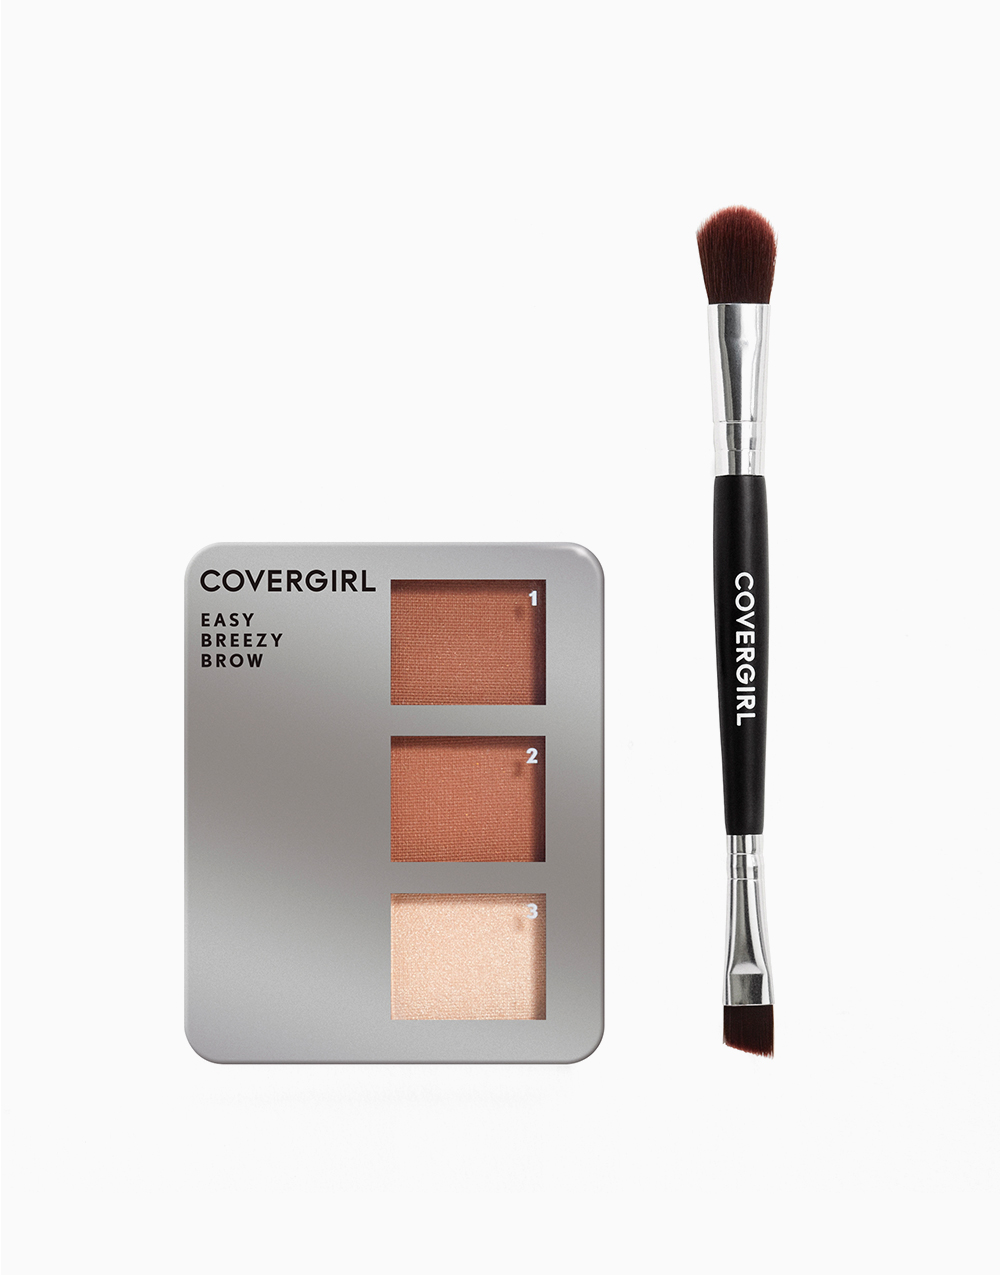 Easy Breezy Brow Powder Kit by CoverGirl | Soft Brown